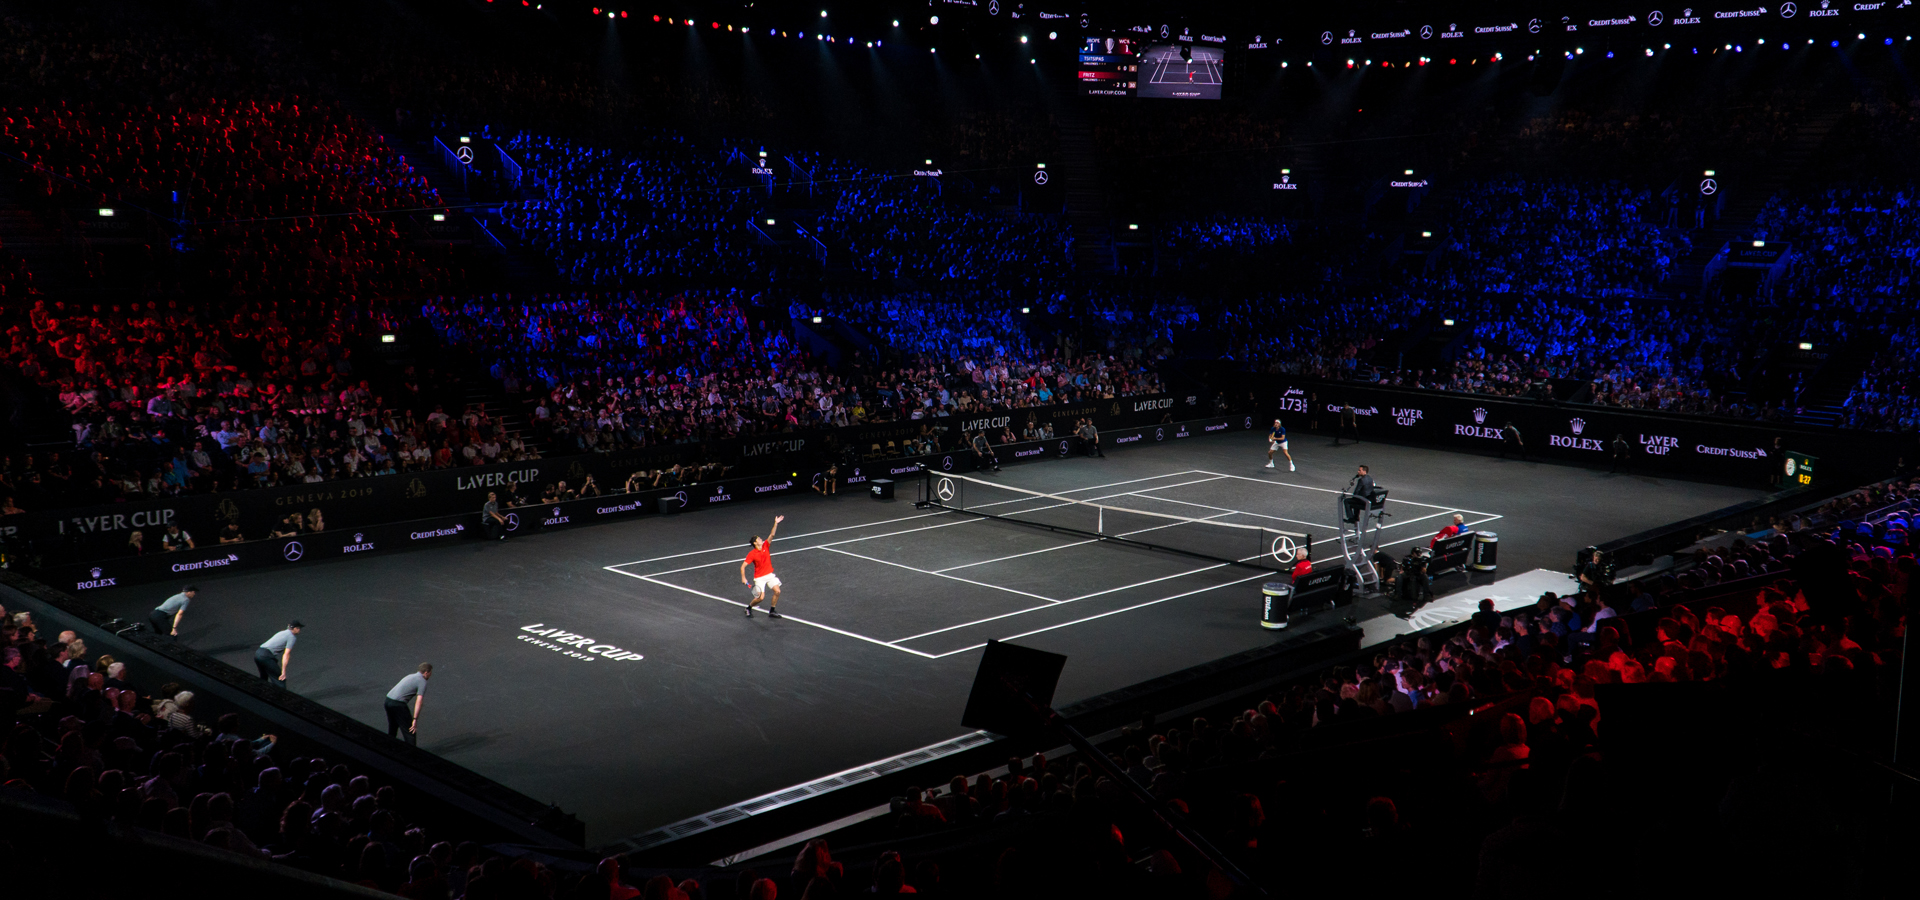 Laver Cup tennis match serve in the arena with dark lighting